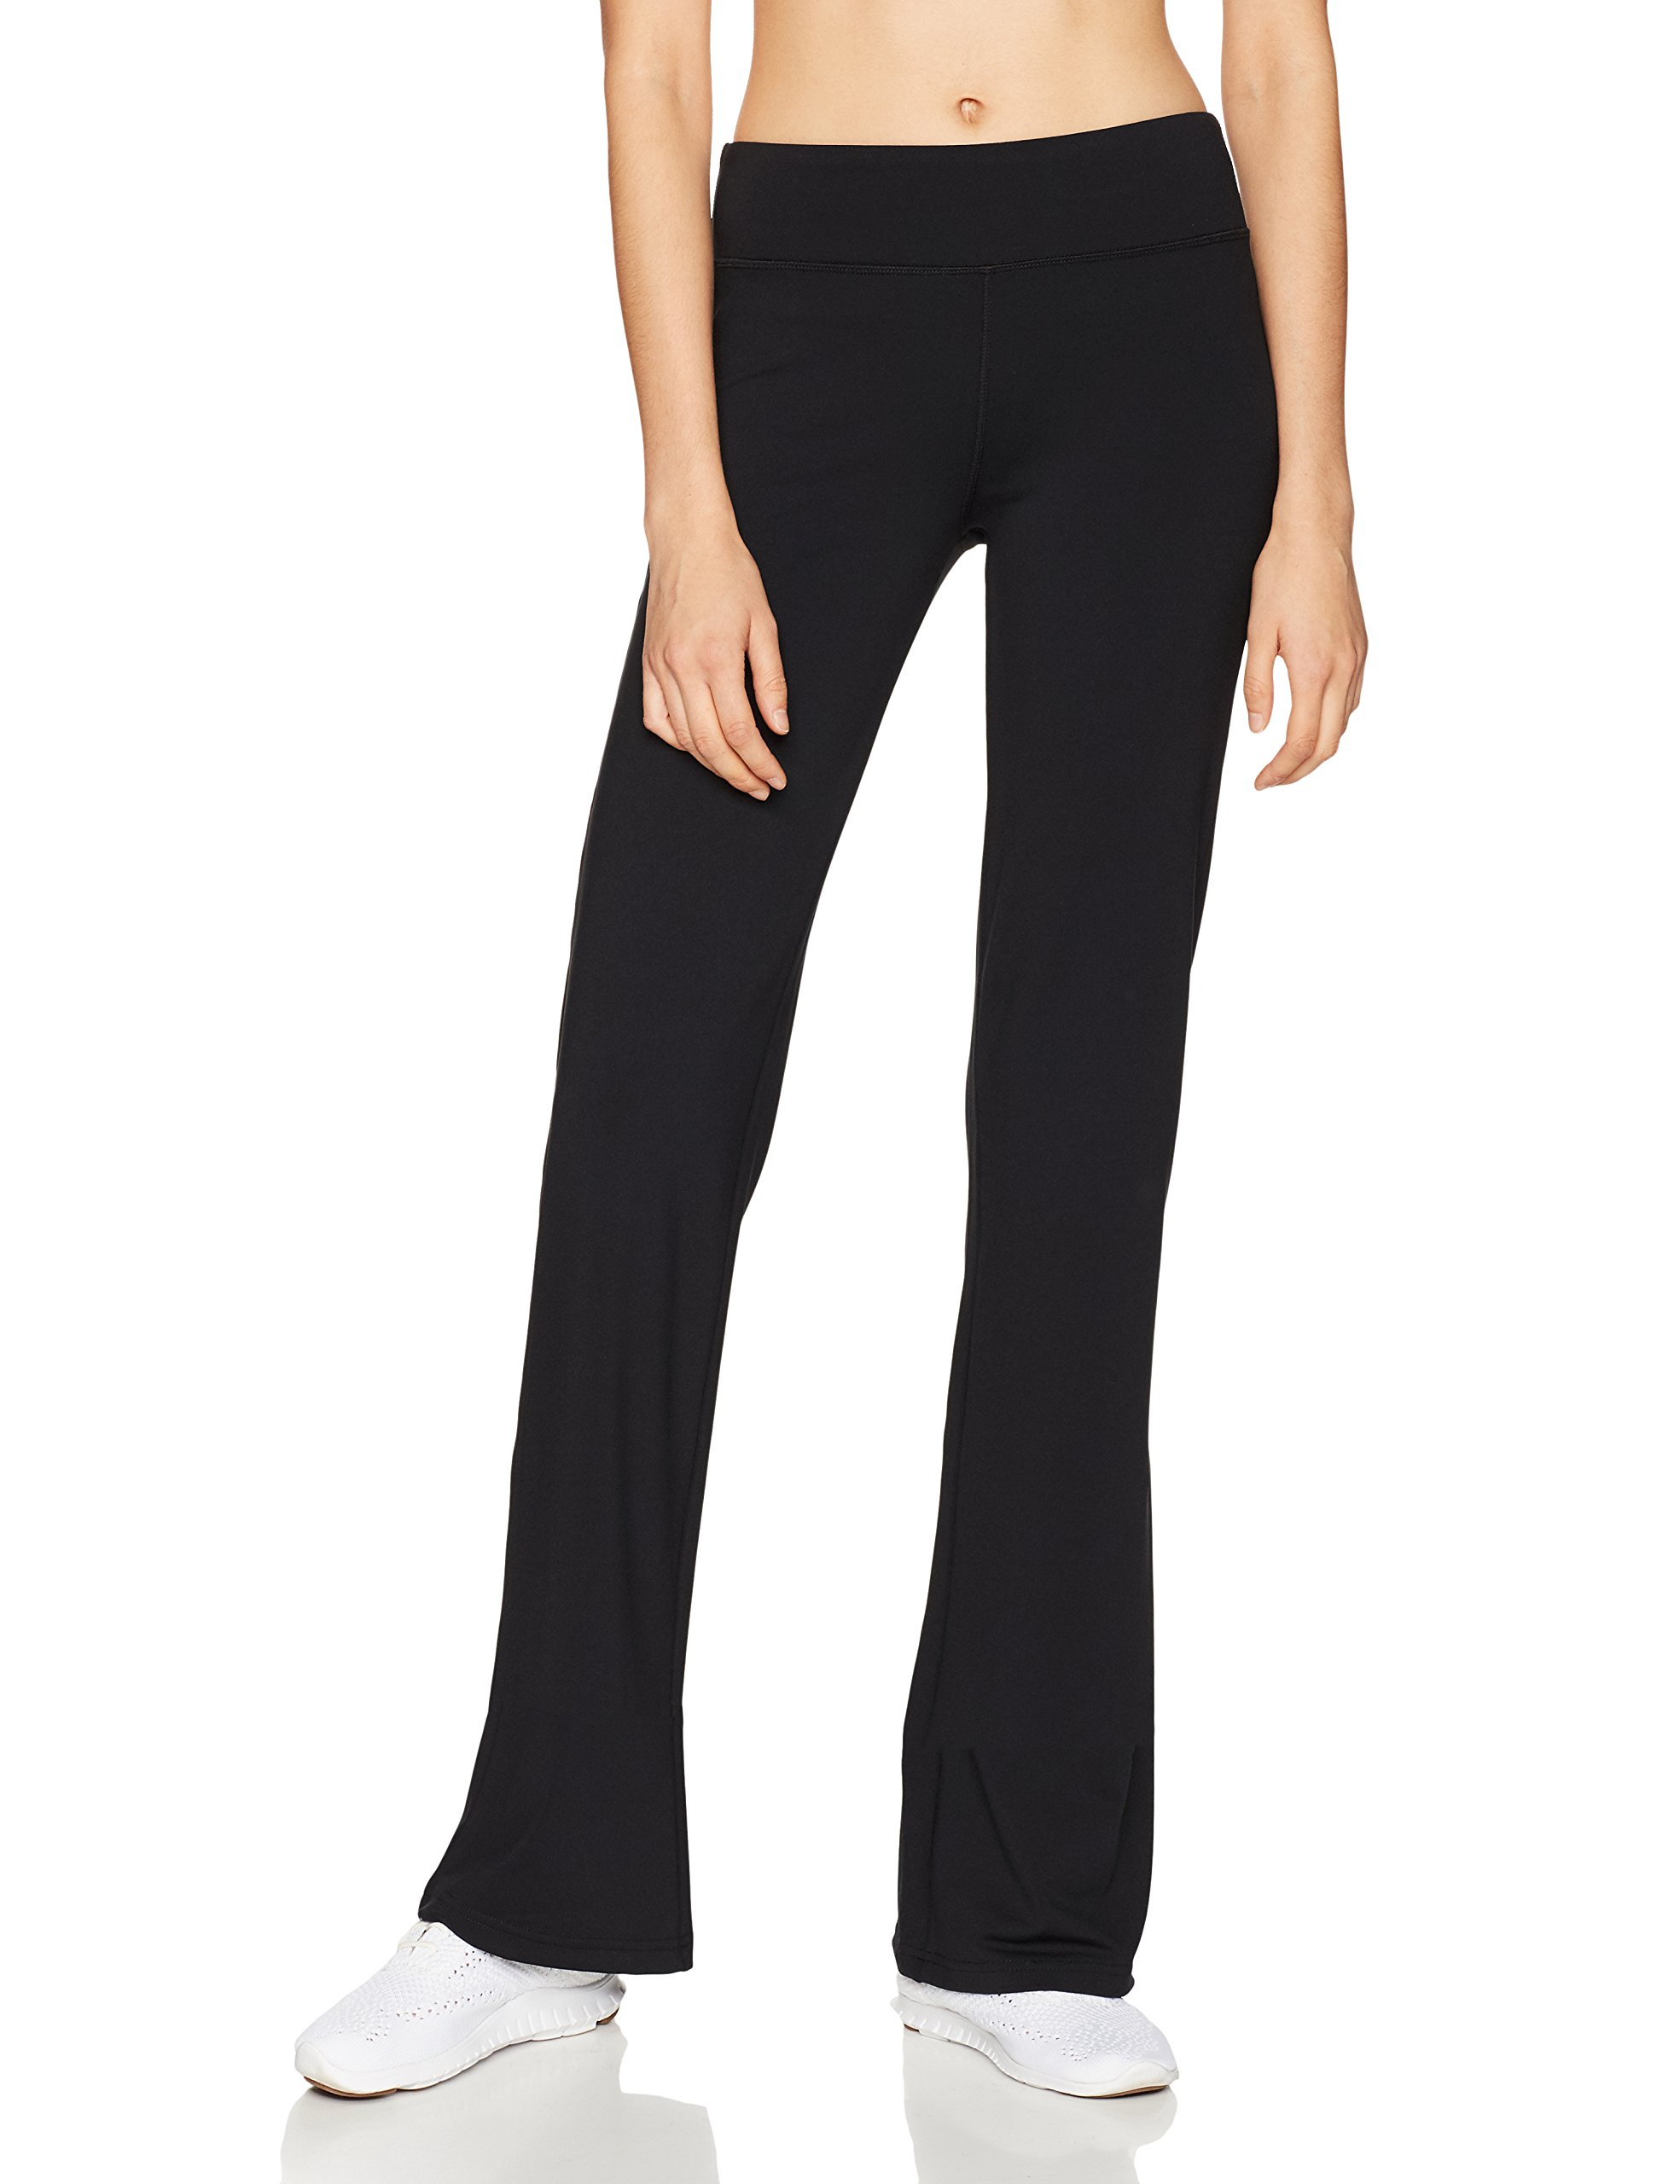 Starter Women's Yoga Pants, Prime Exclusive, Black, Large